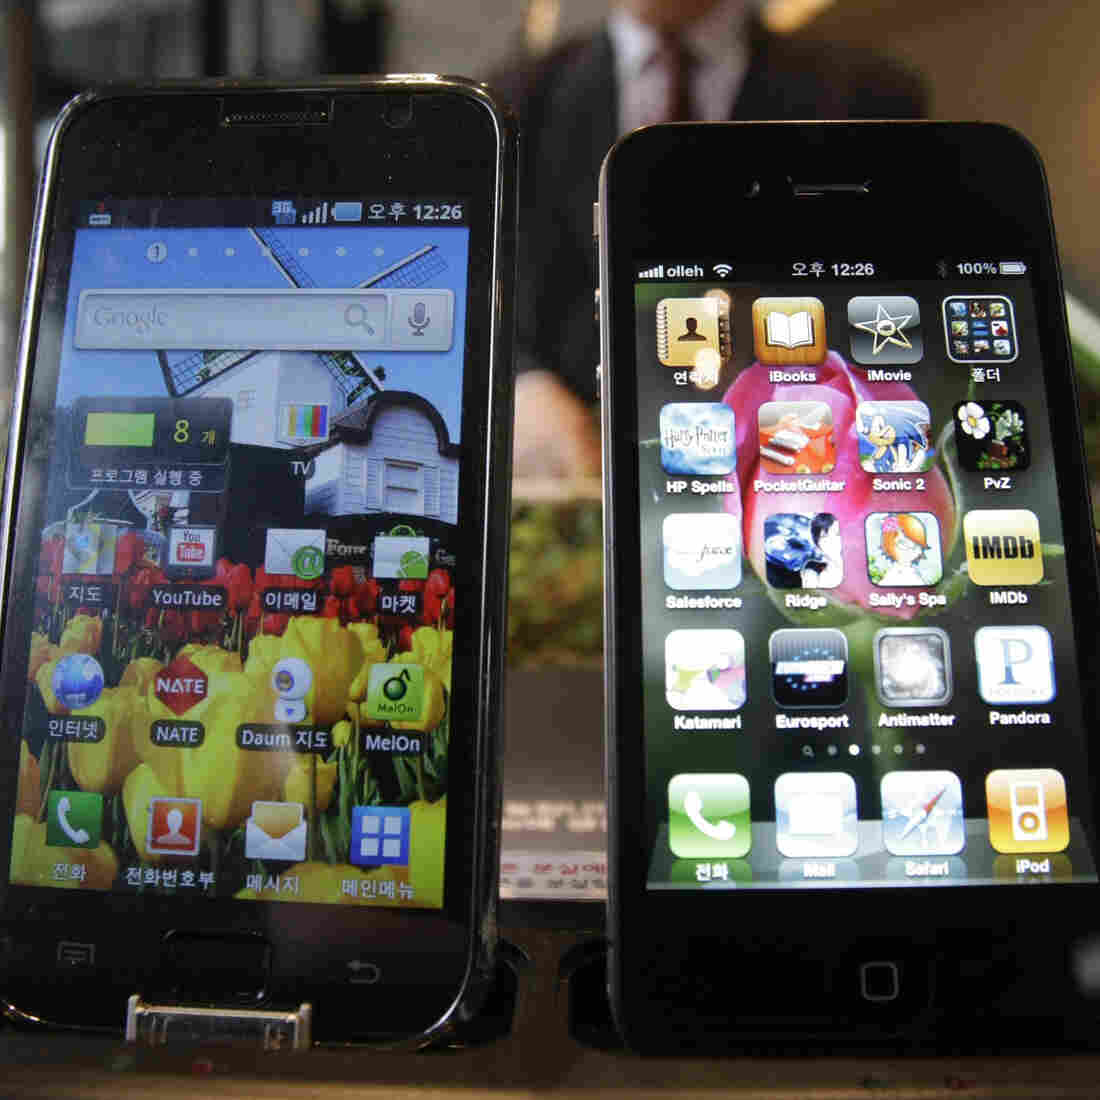 Samsung Fight Among Many In Apple's Patent War